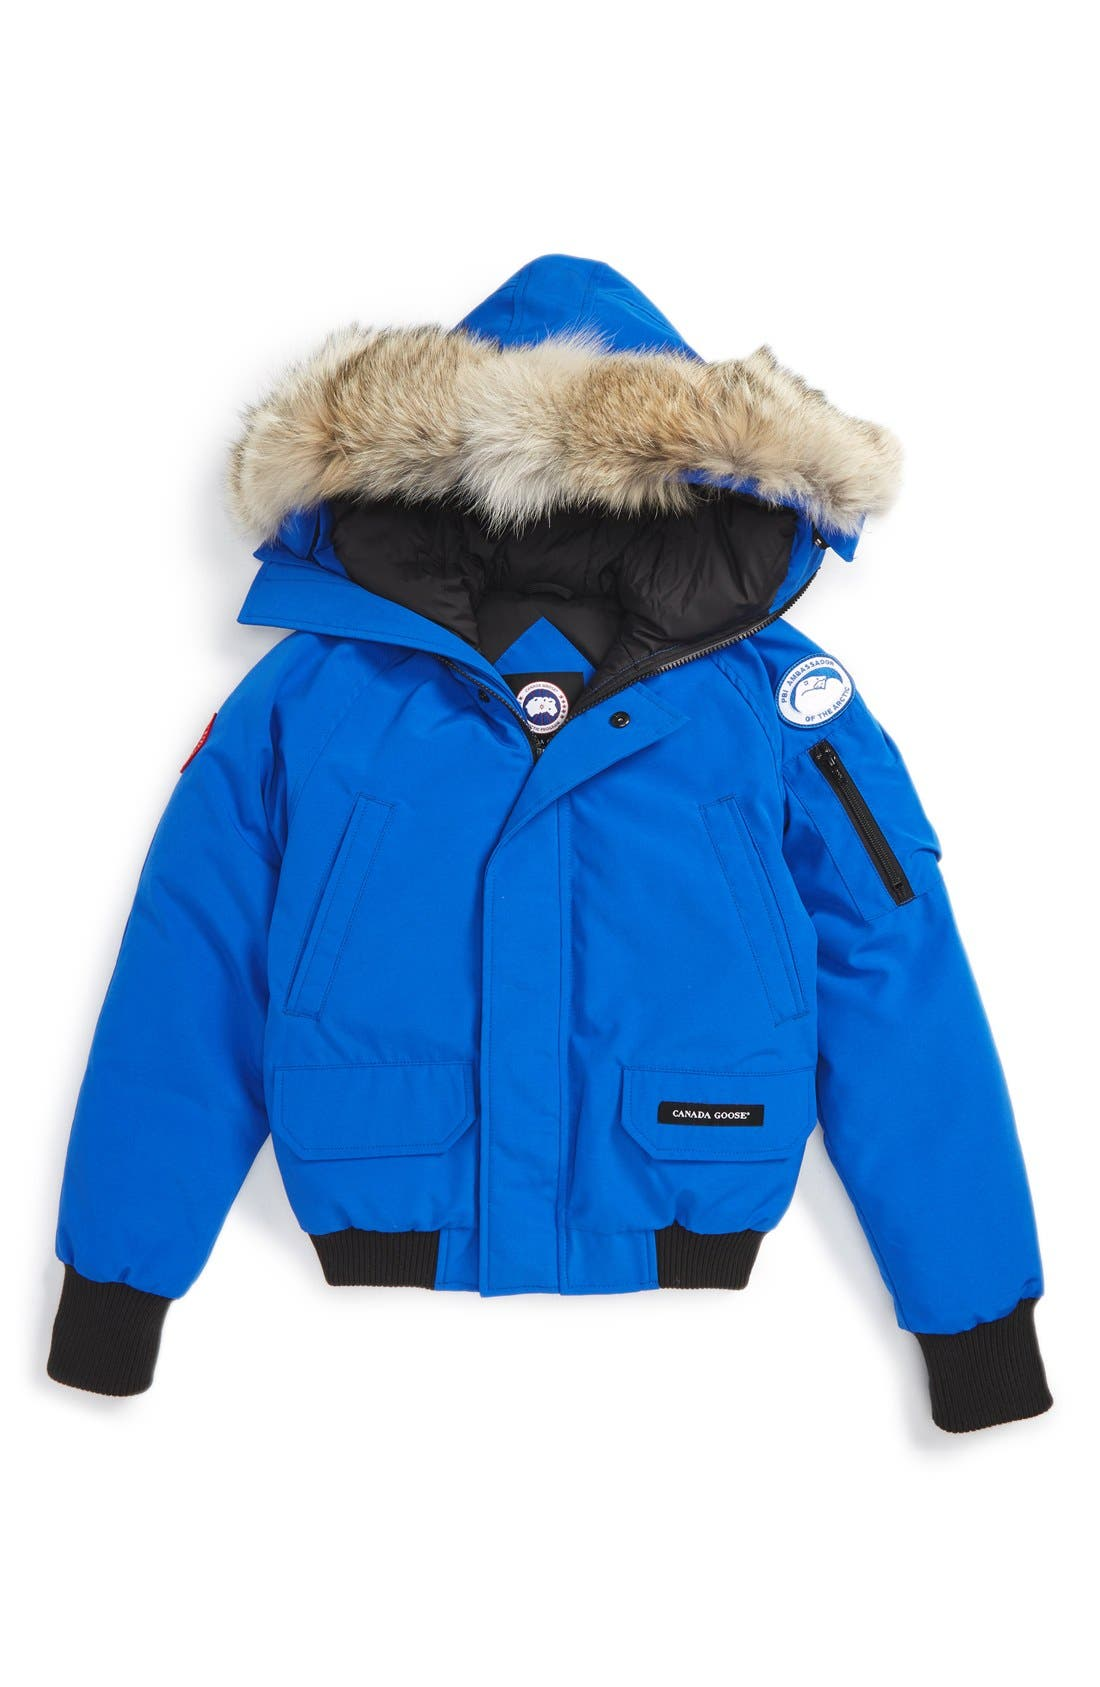 Canada Goose 'PBI Chilliwack' Hooded Bomber Jacket with Genuine Coyote Fur Trim (Little Kid & Big Kid)